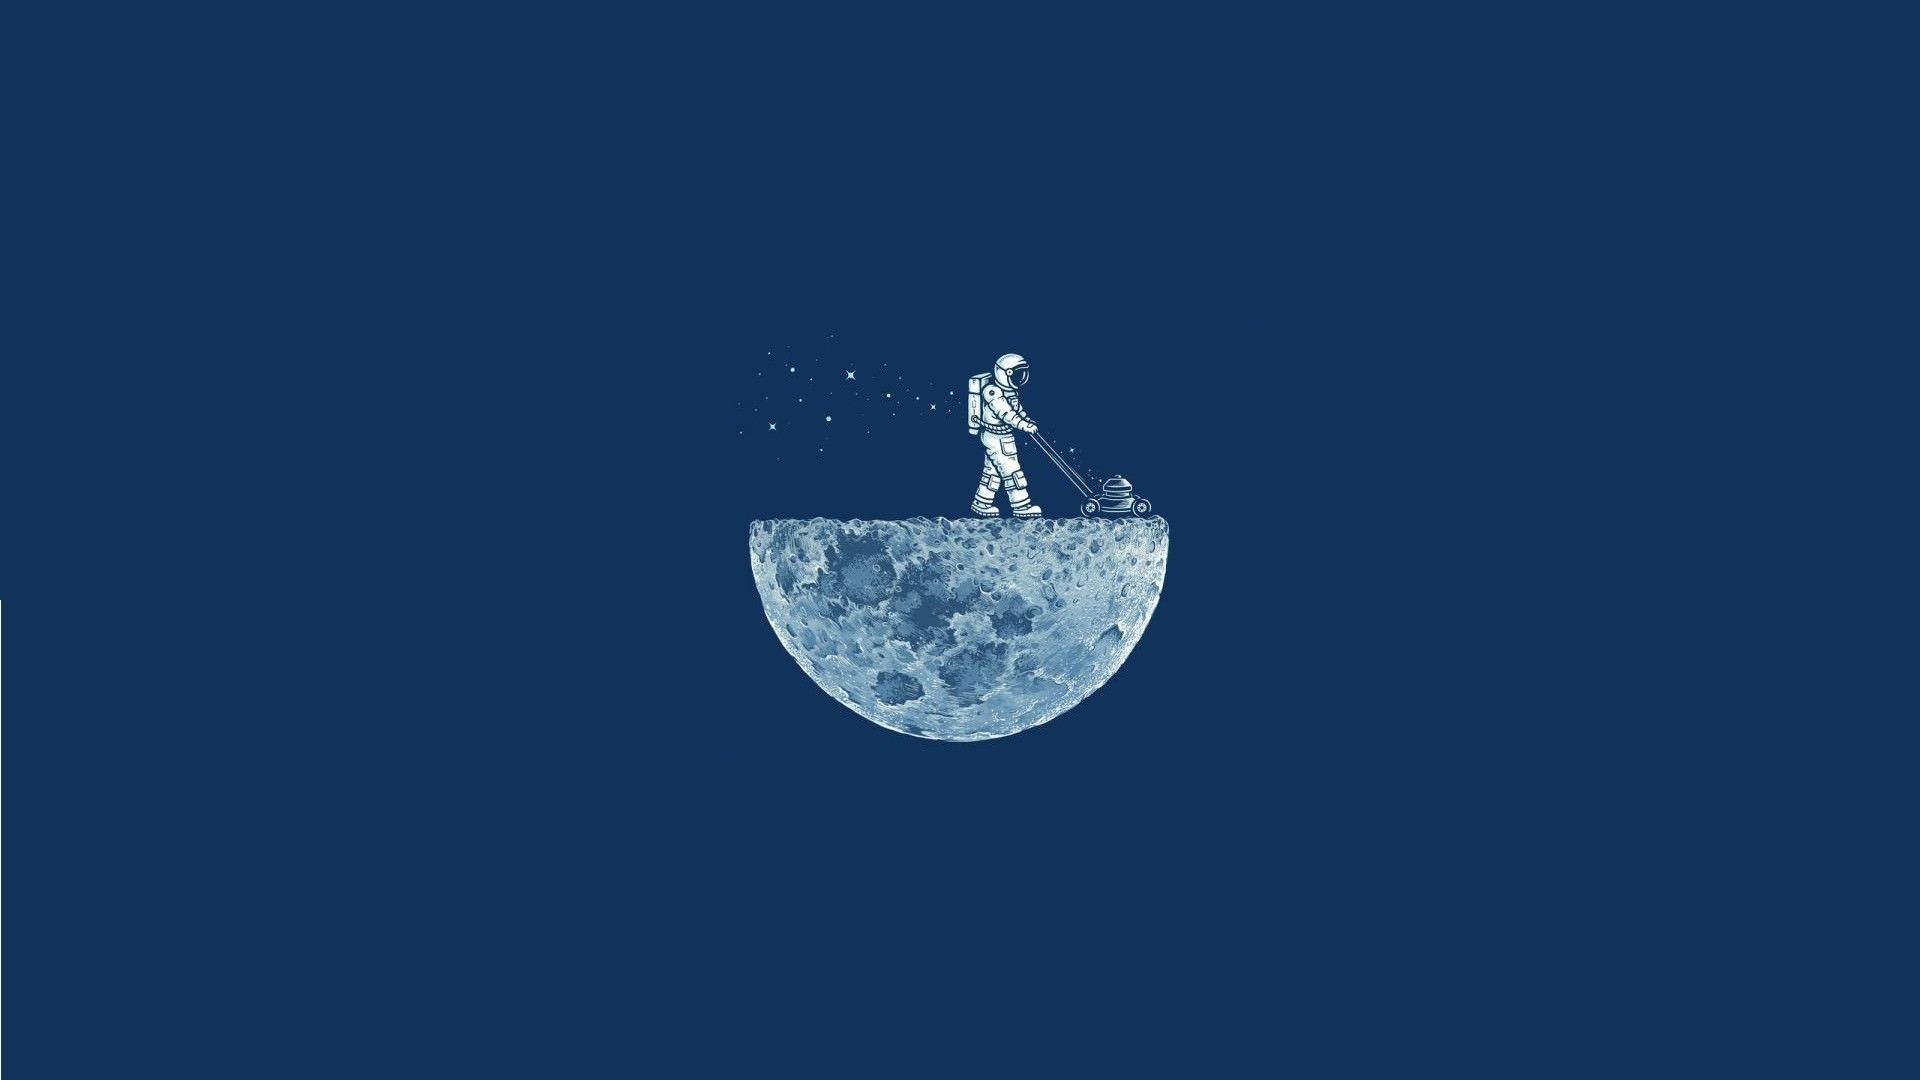 Moon-Astronauts-Illustration-Wallpaper